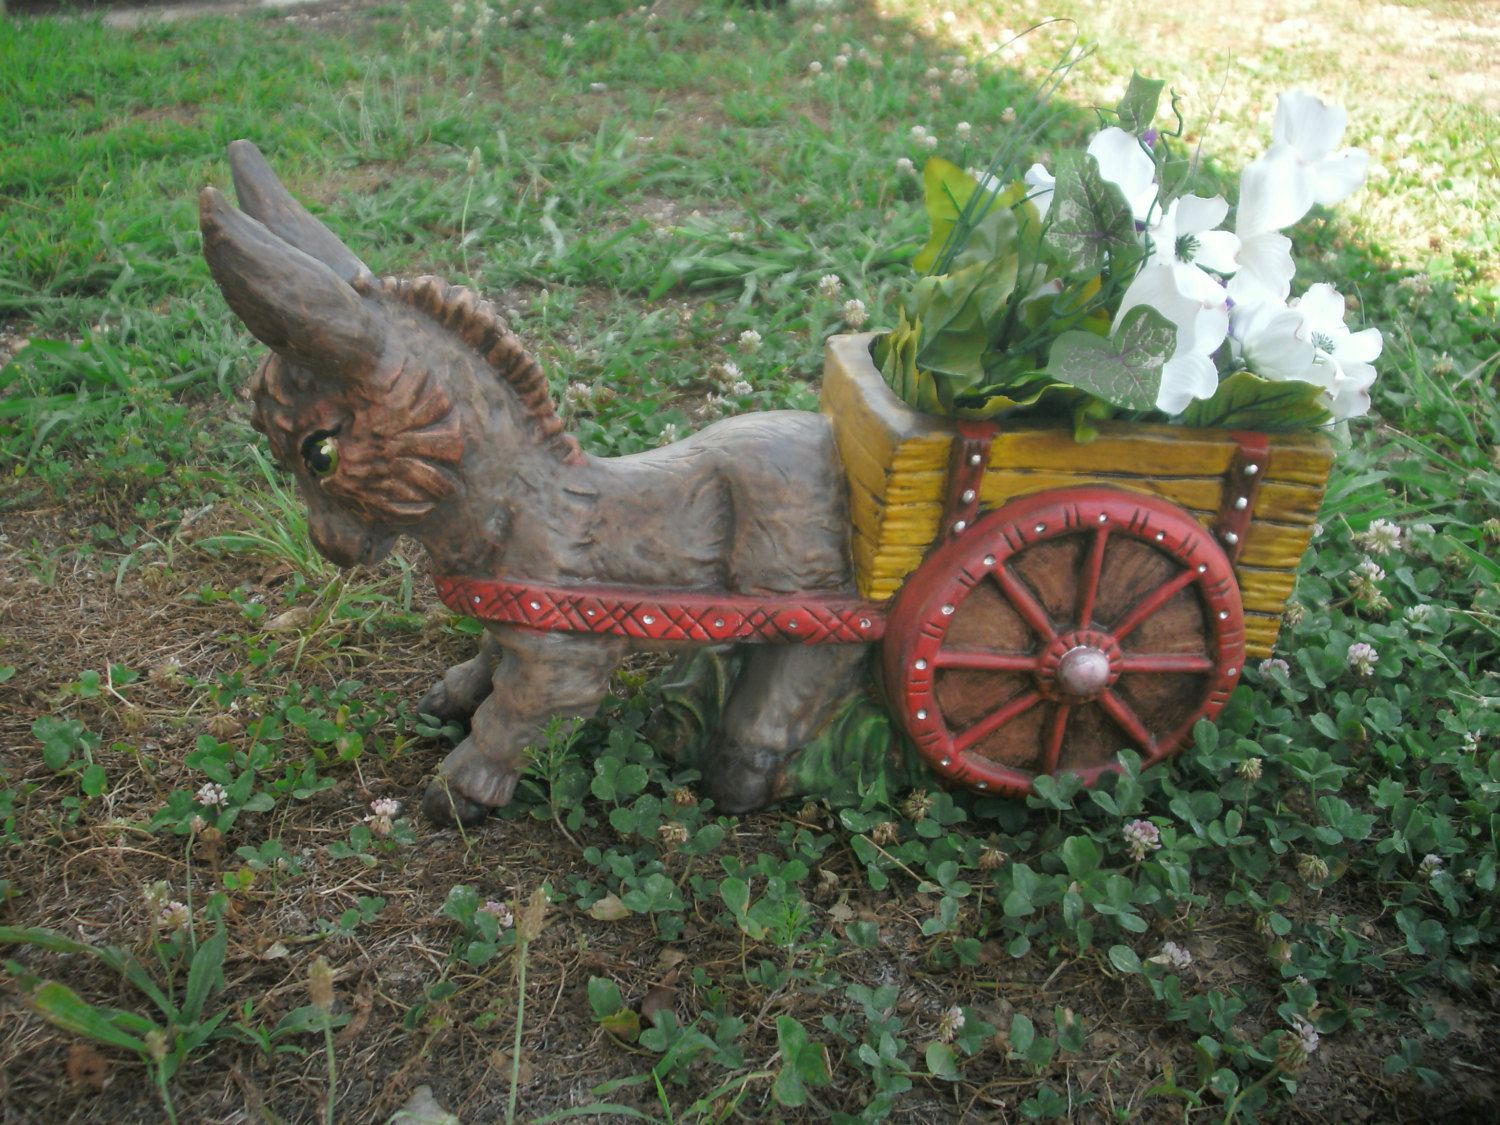 Donkey Cart Planter Donkey Planter Donkey Pulling Cart Flower Pot Gifts For  Her Mothers Gift Idea